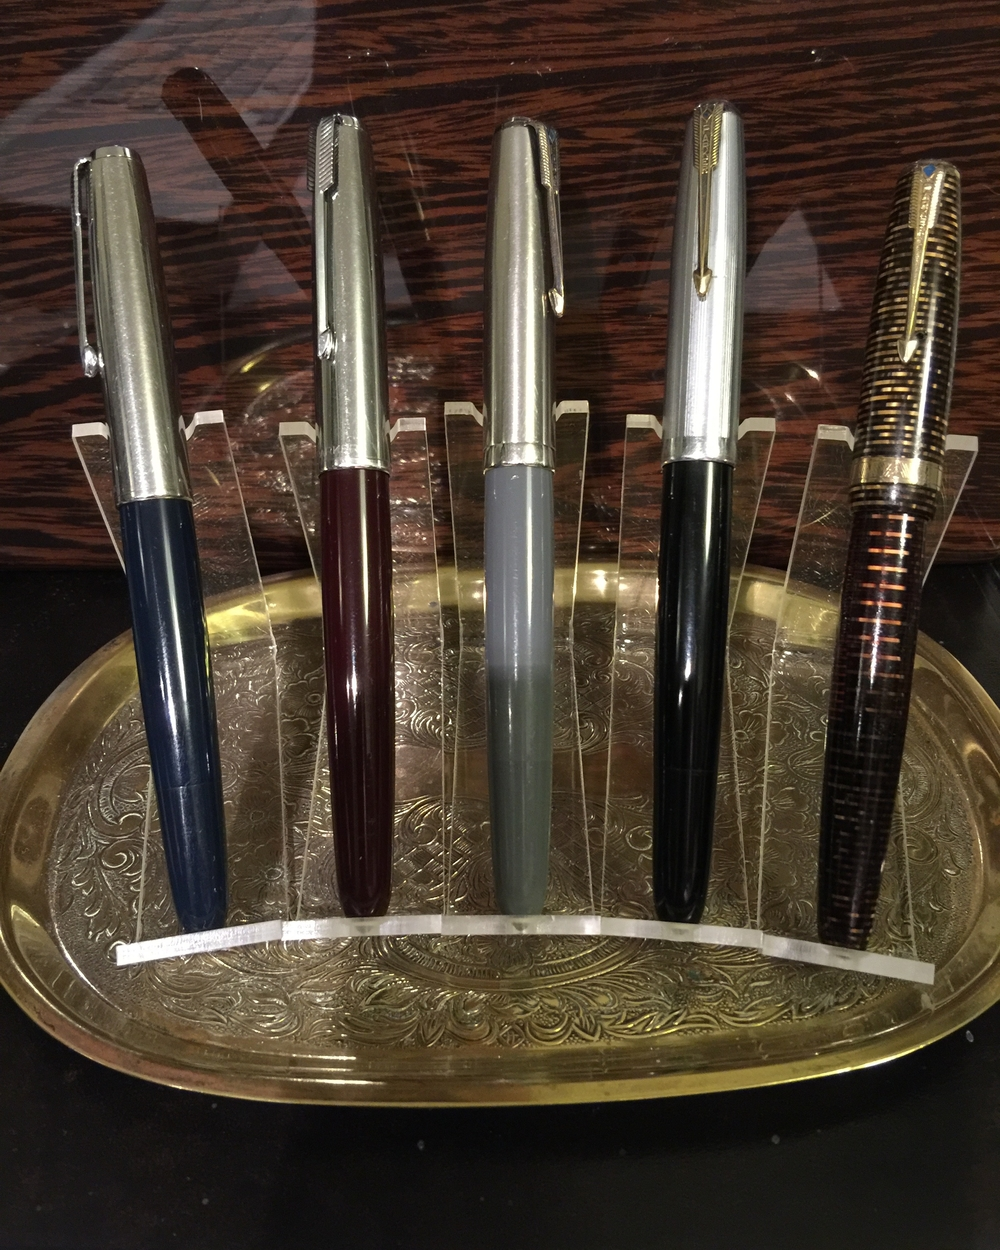 These are my Parker's, 3 Parker 51 Vacumatic, 1 Parker 51 Aerometric and the 1944 Vacumatic